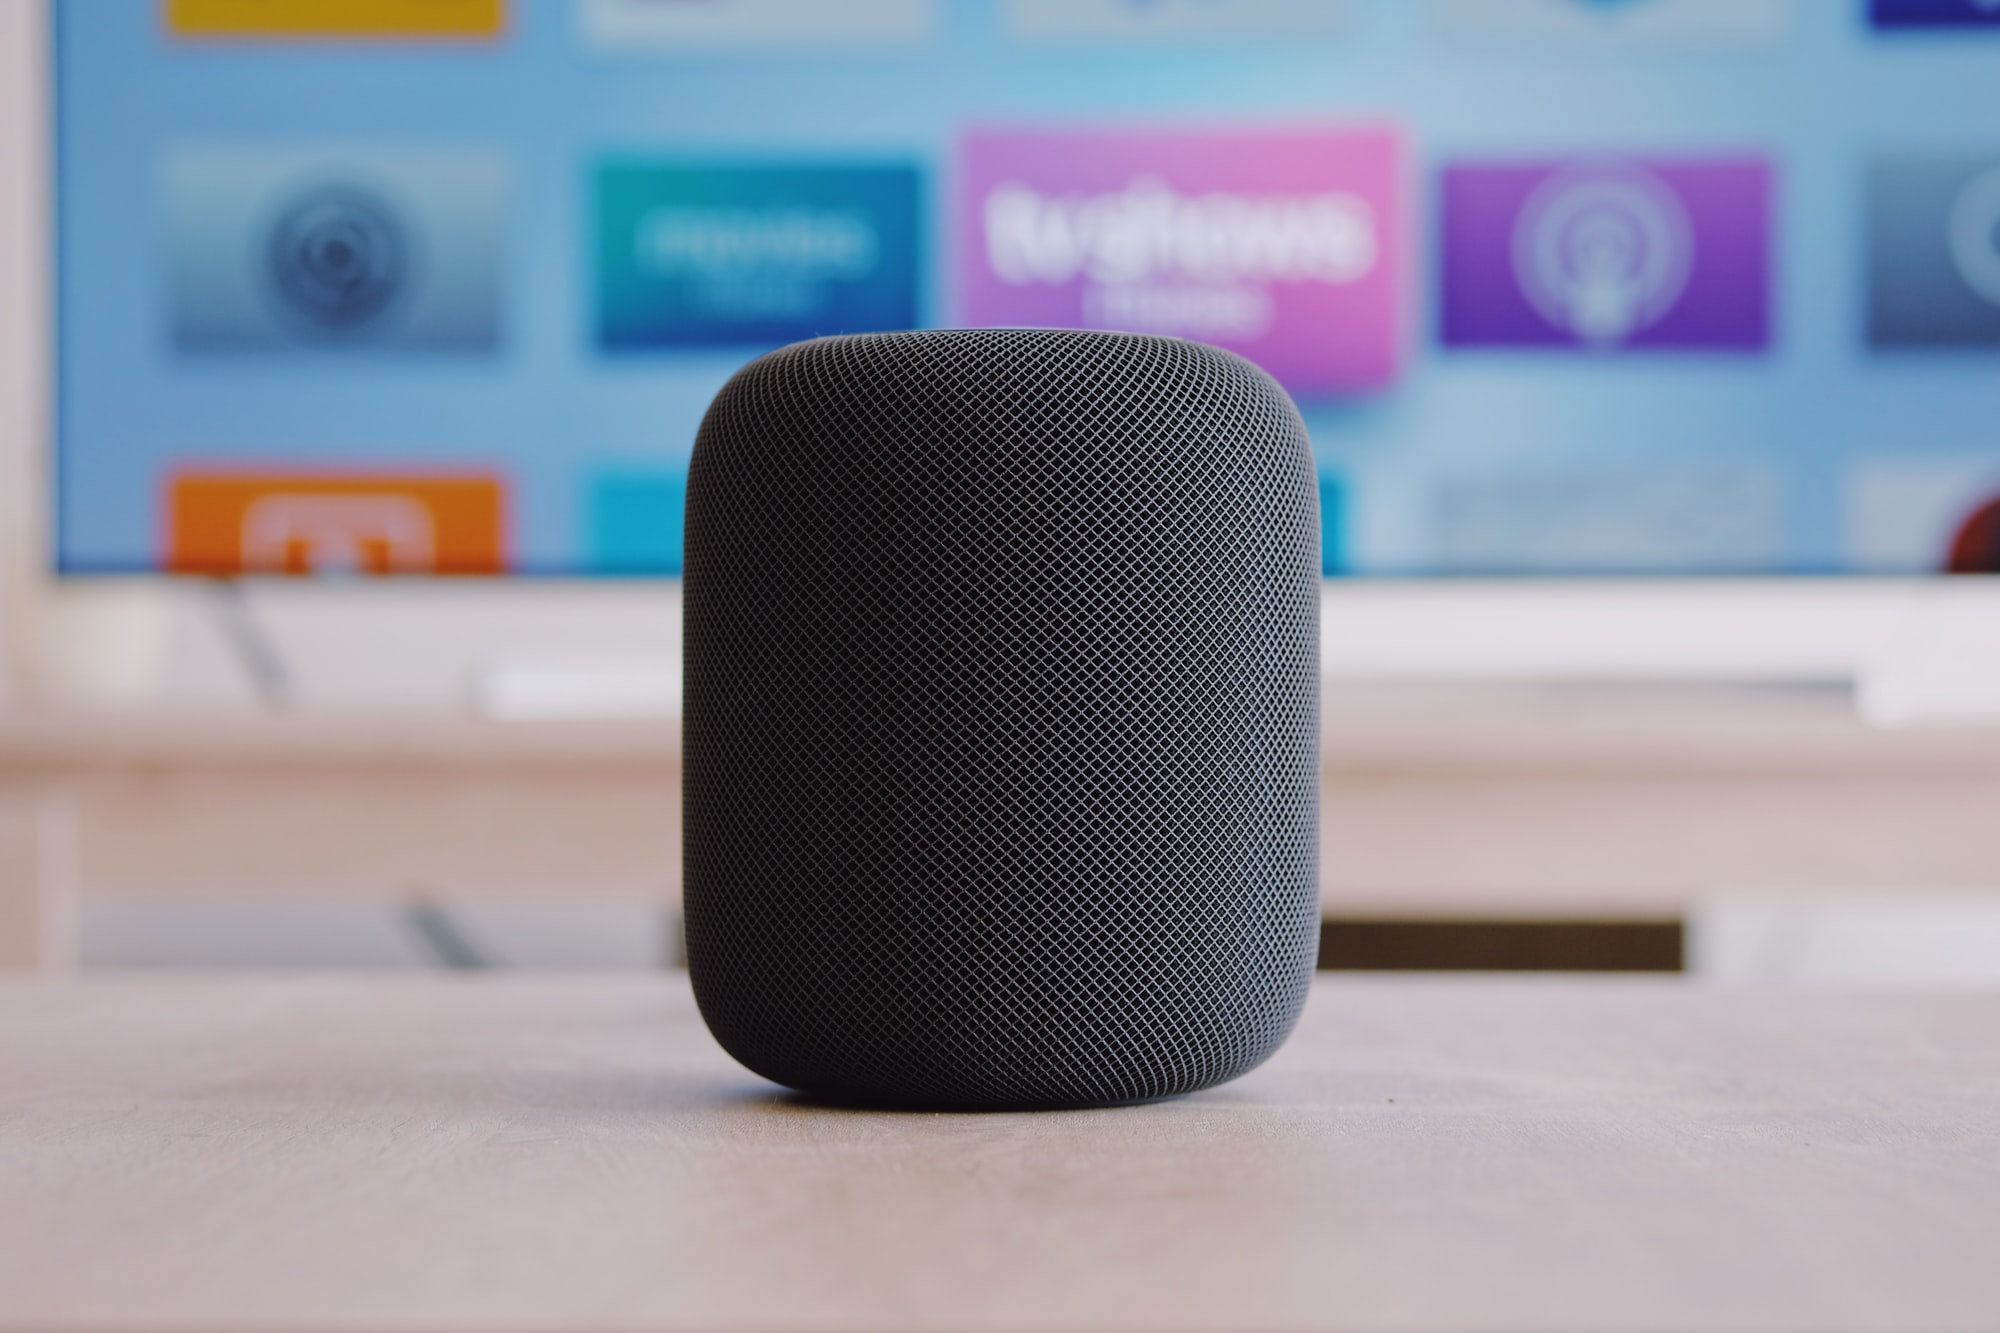 HomePod Initial Impressions